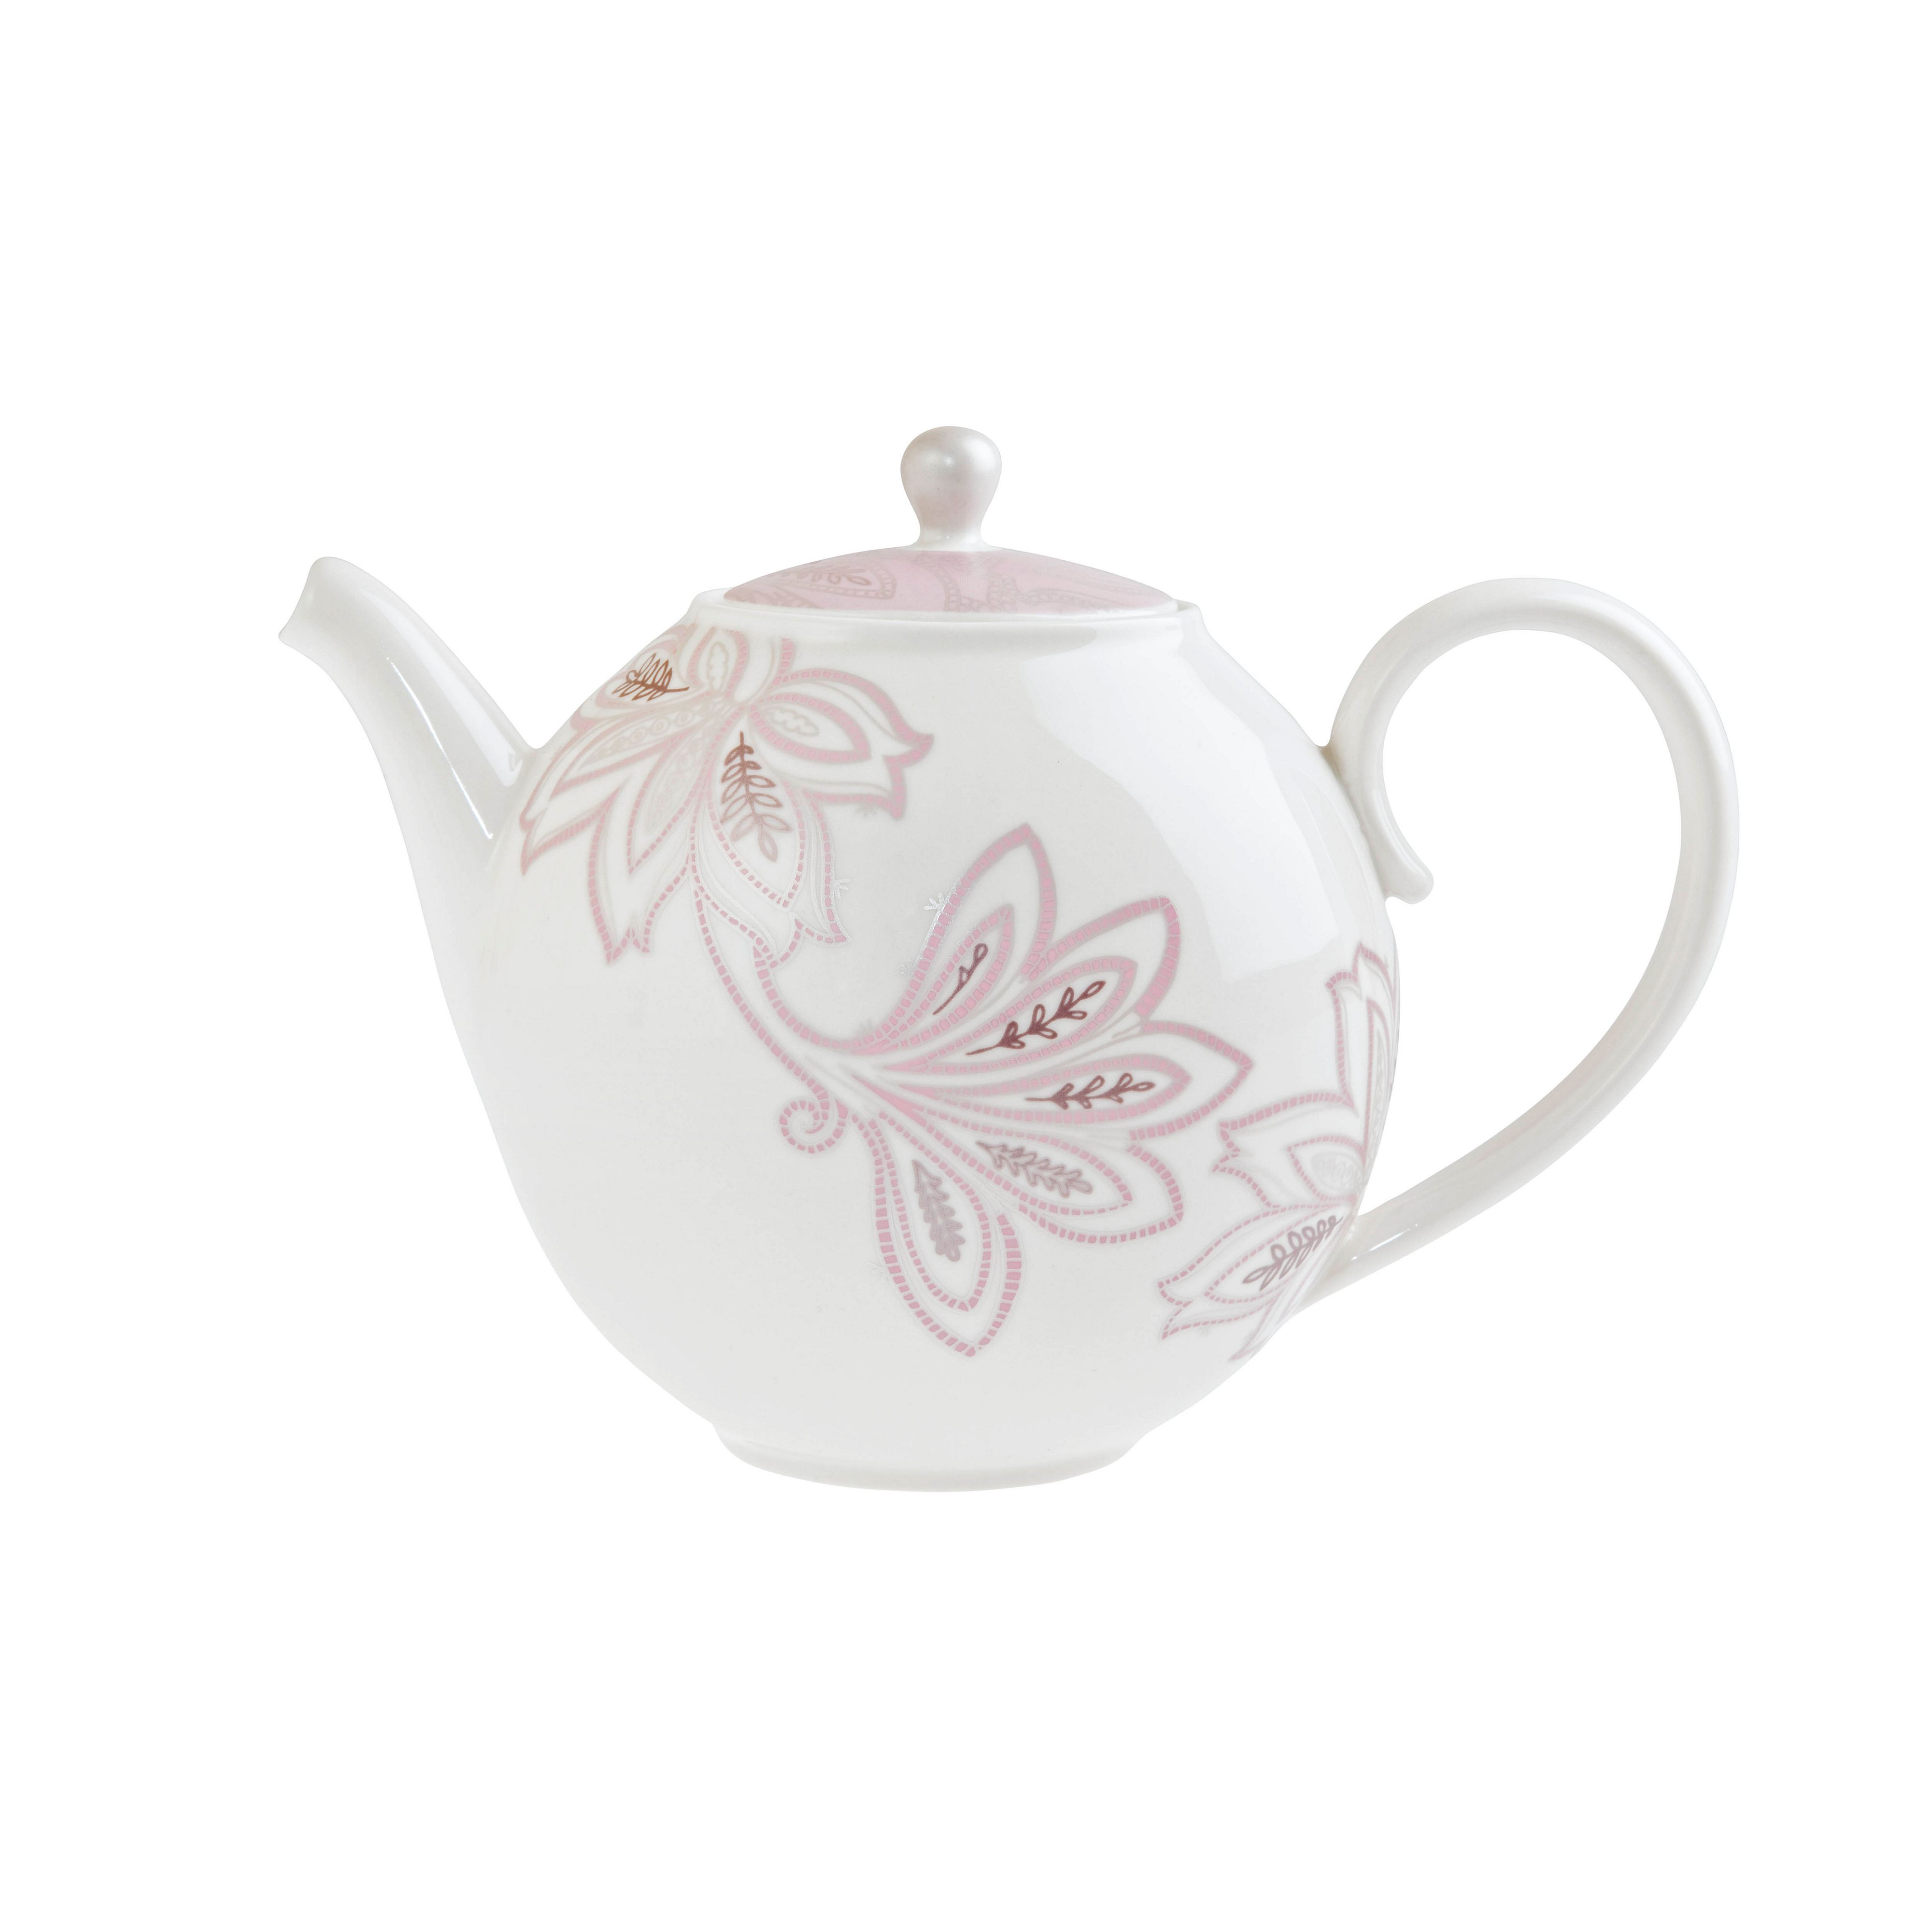 Chantilly teapot